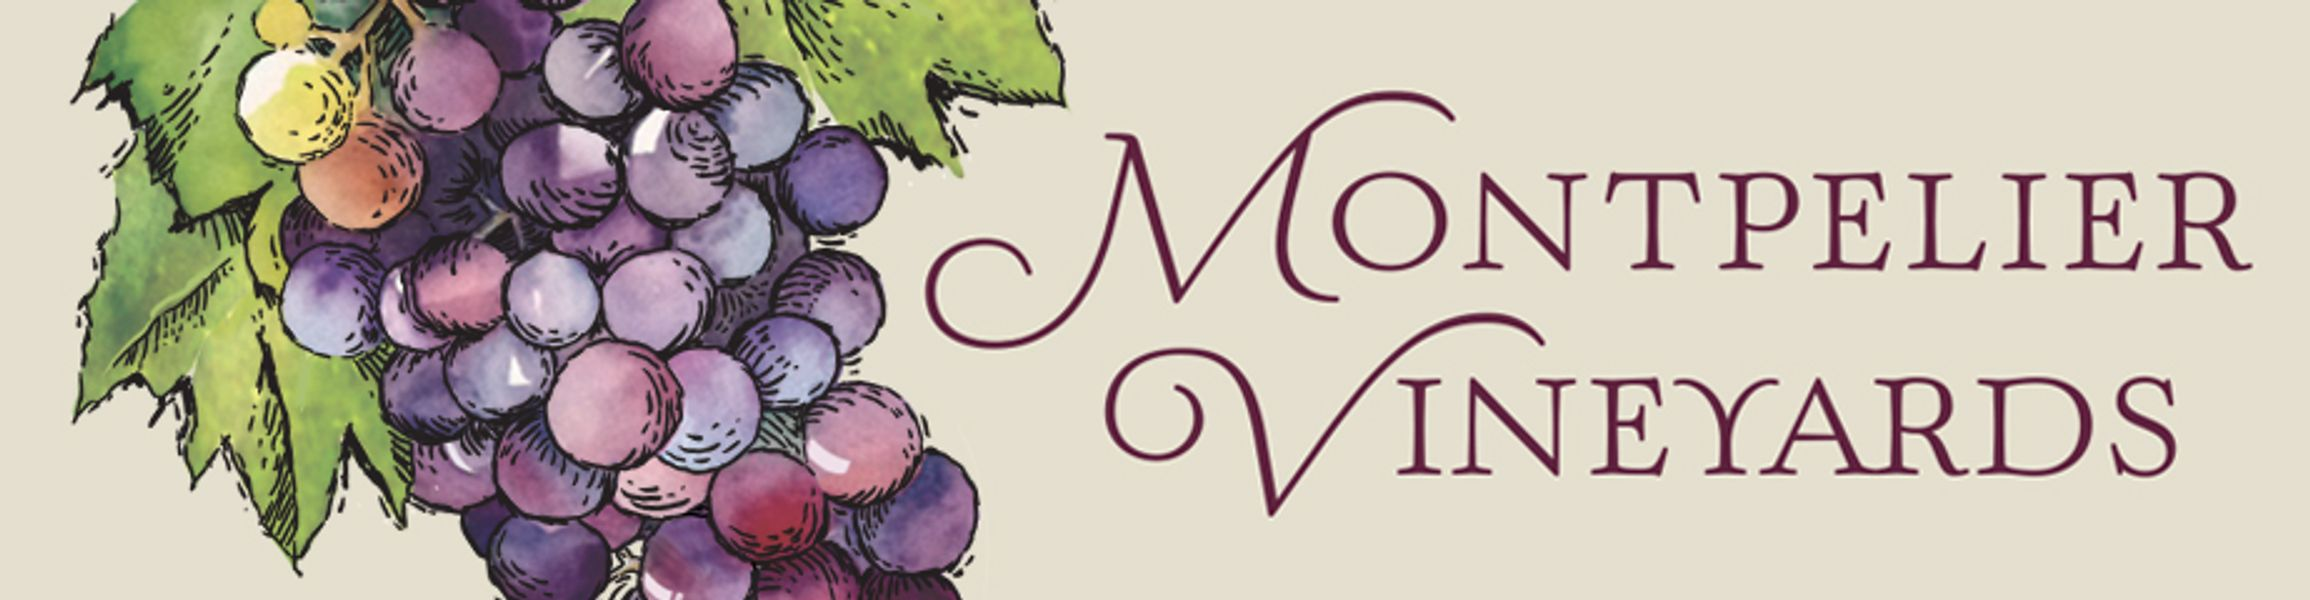 Brand for Montpelier Vineyards LLC